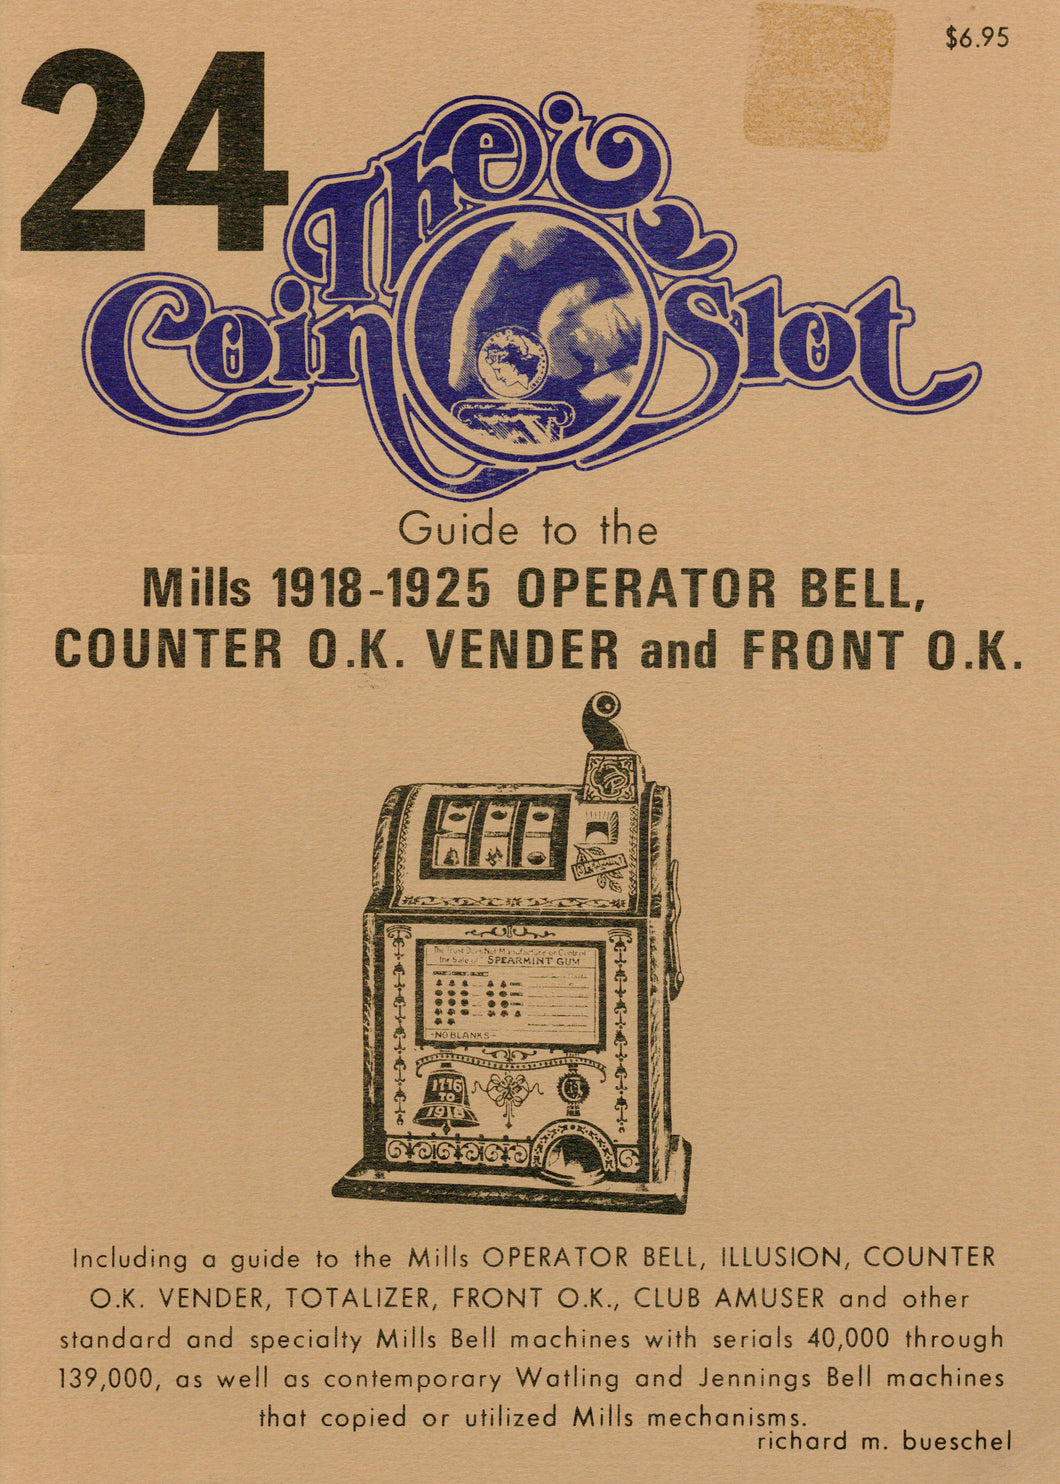 Coin Slot #24. Guide to the Mills 1918-1925 Operator Bell, Counter O.K. Vendor and Front O.K.